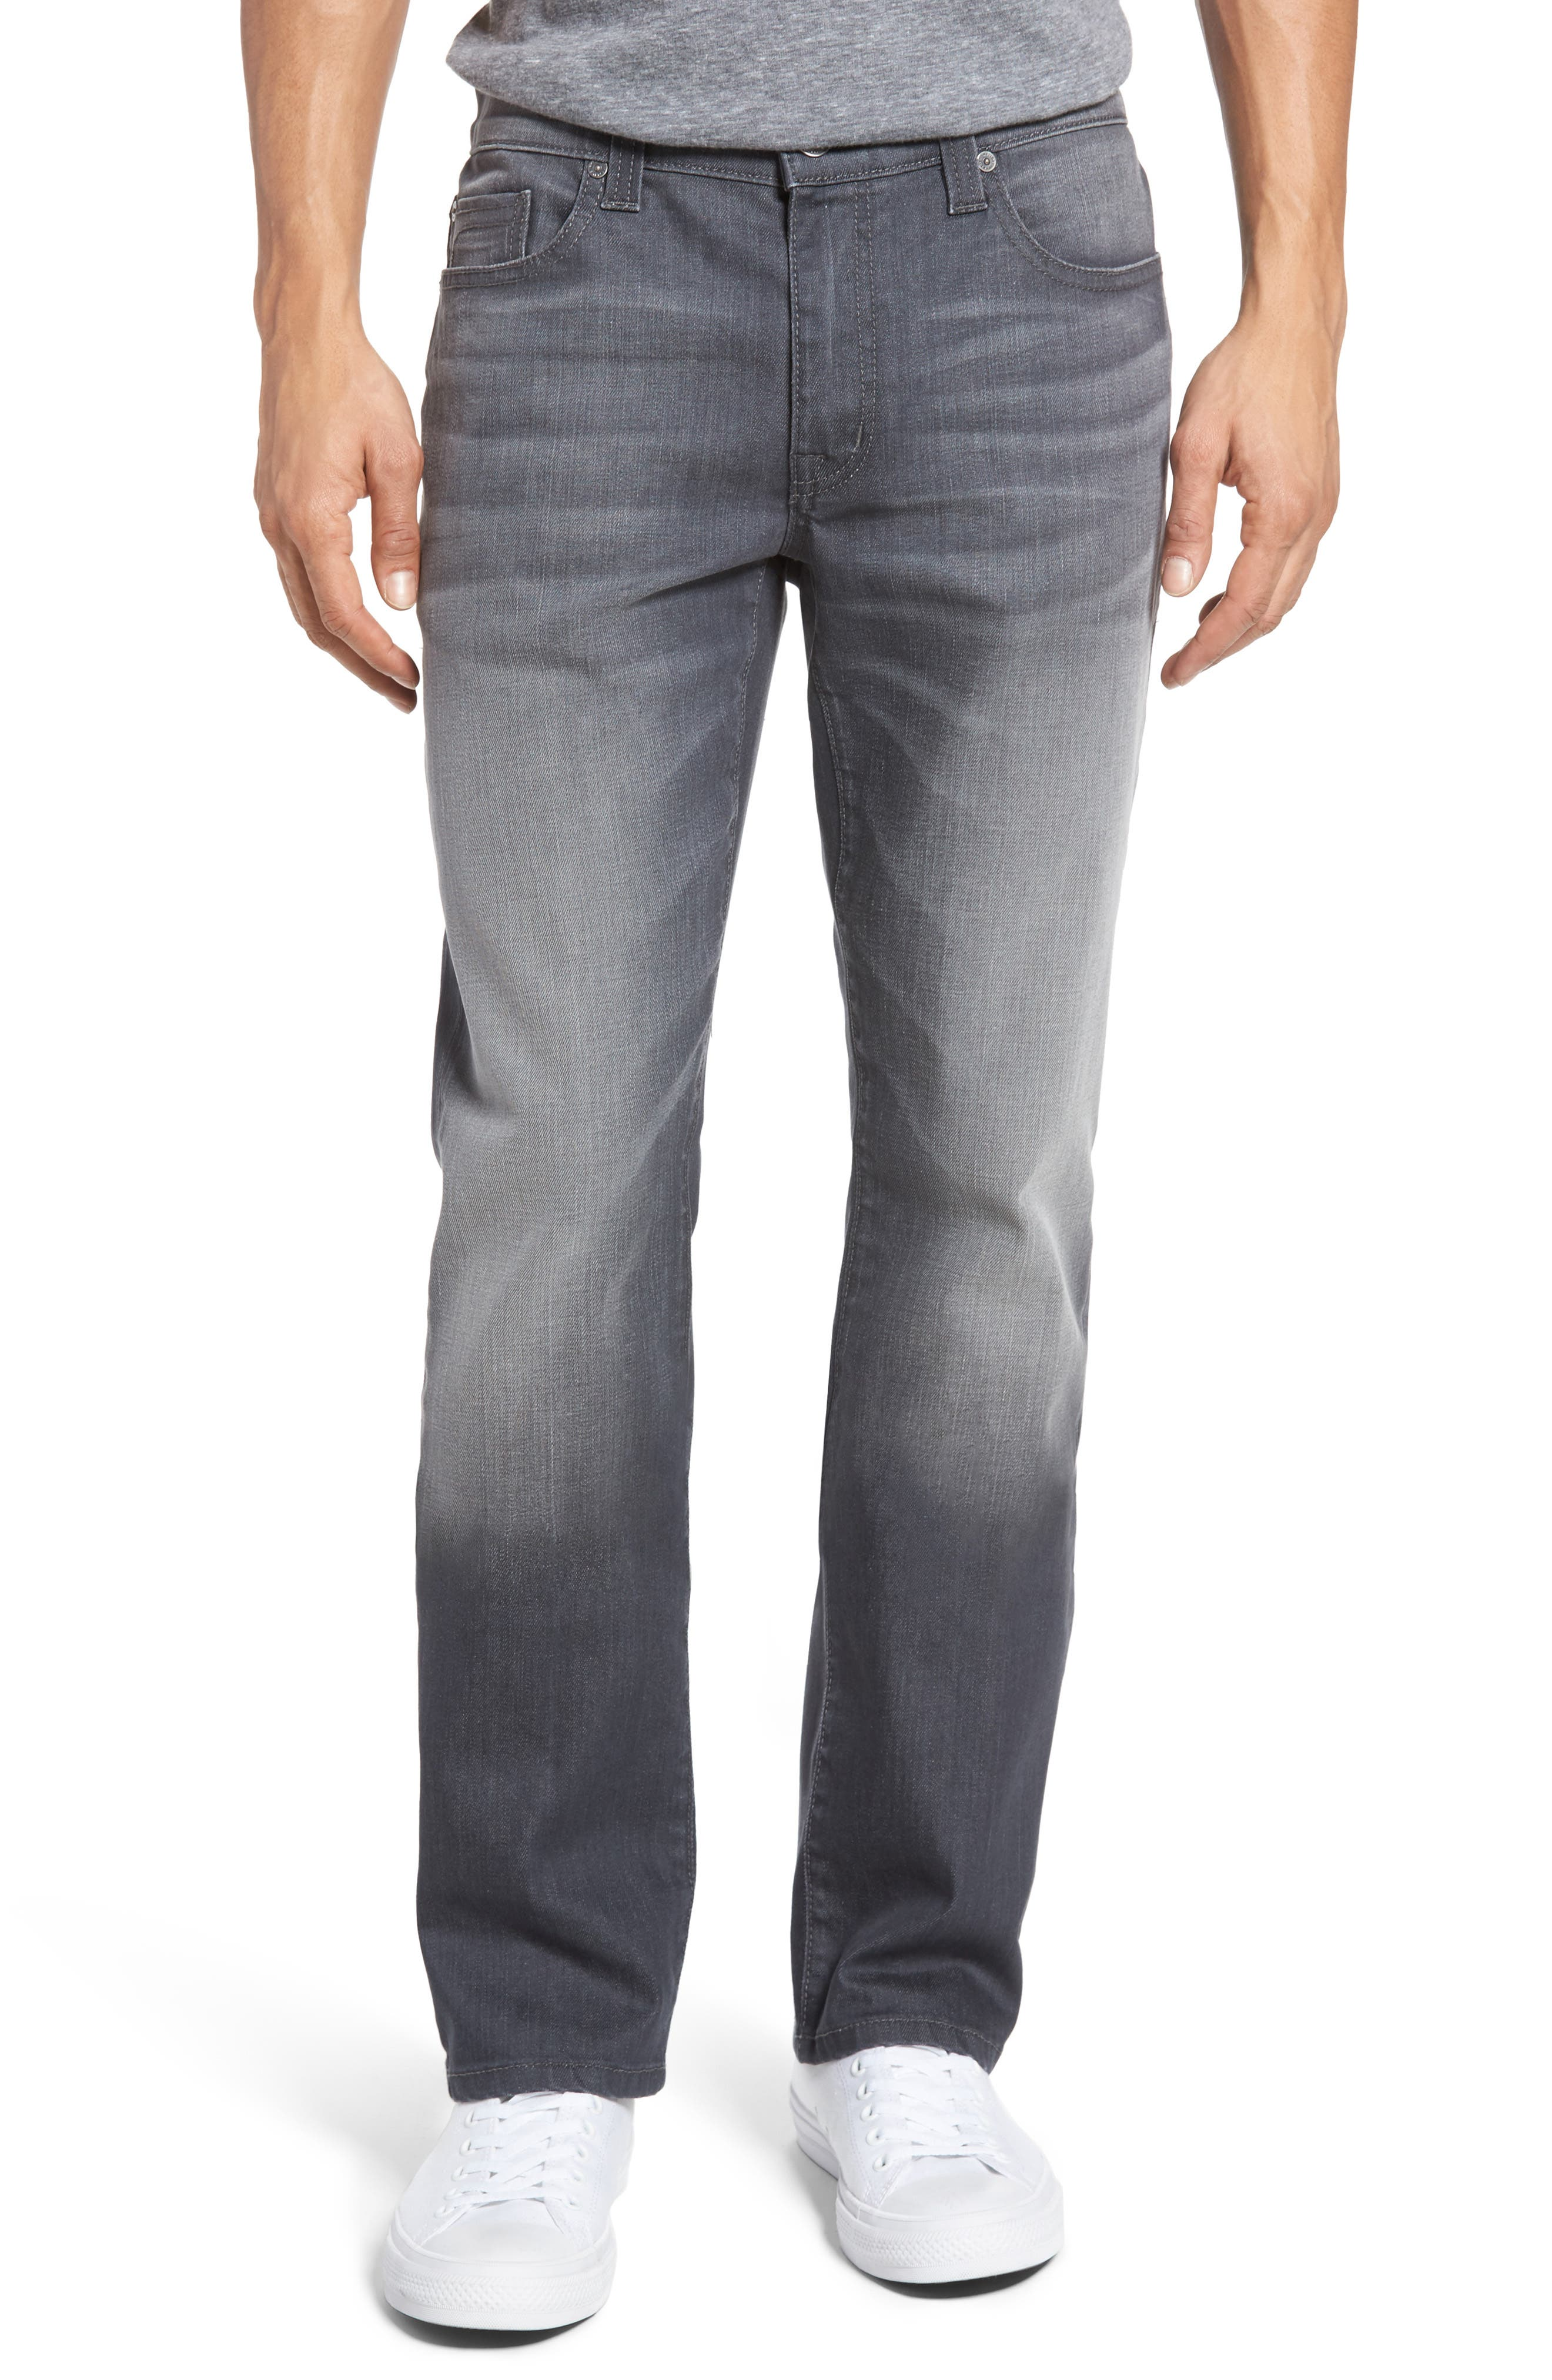 Impala Straight Leg Jeans,                         Main,                         color, 010